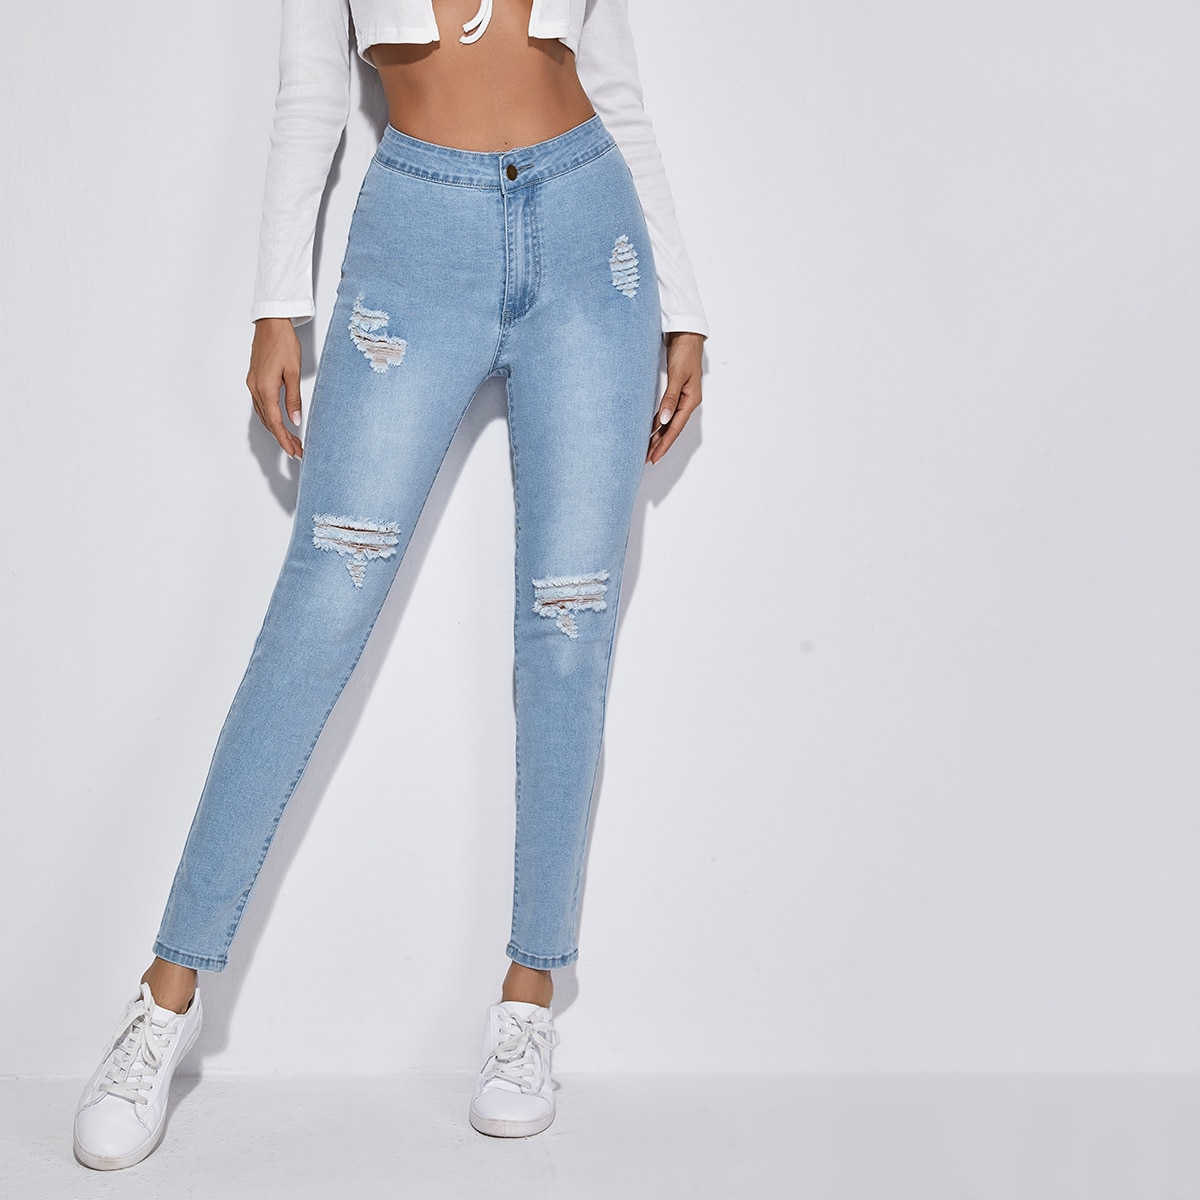 High-Waisted High Stretch Ripped Light Wash Skinny Jeans